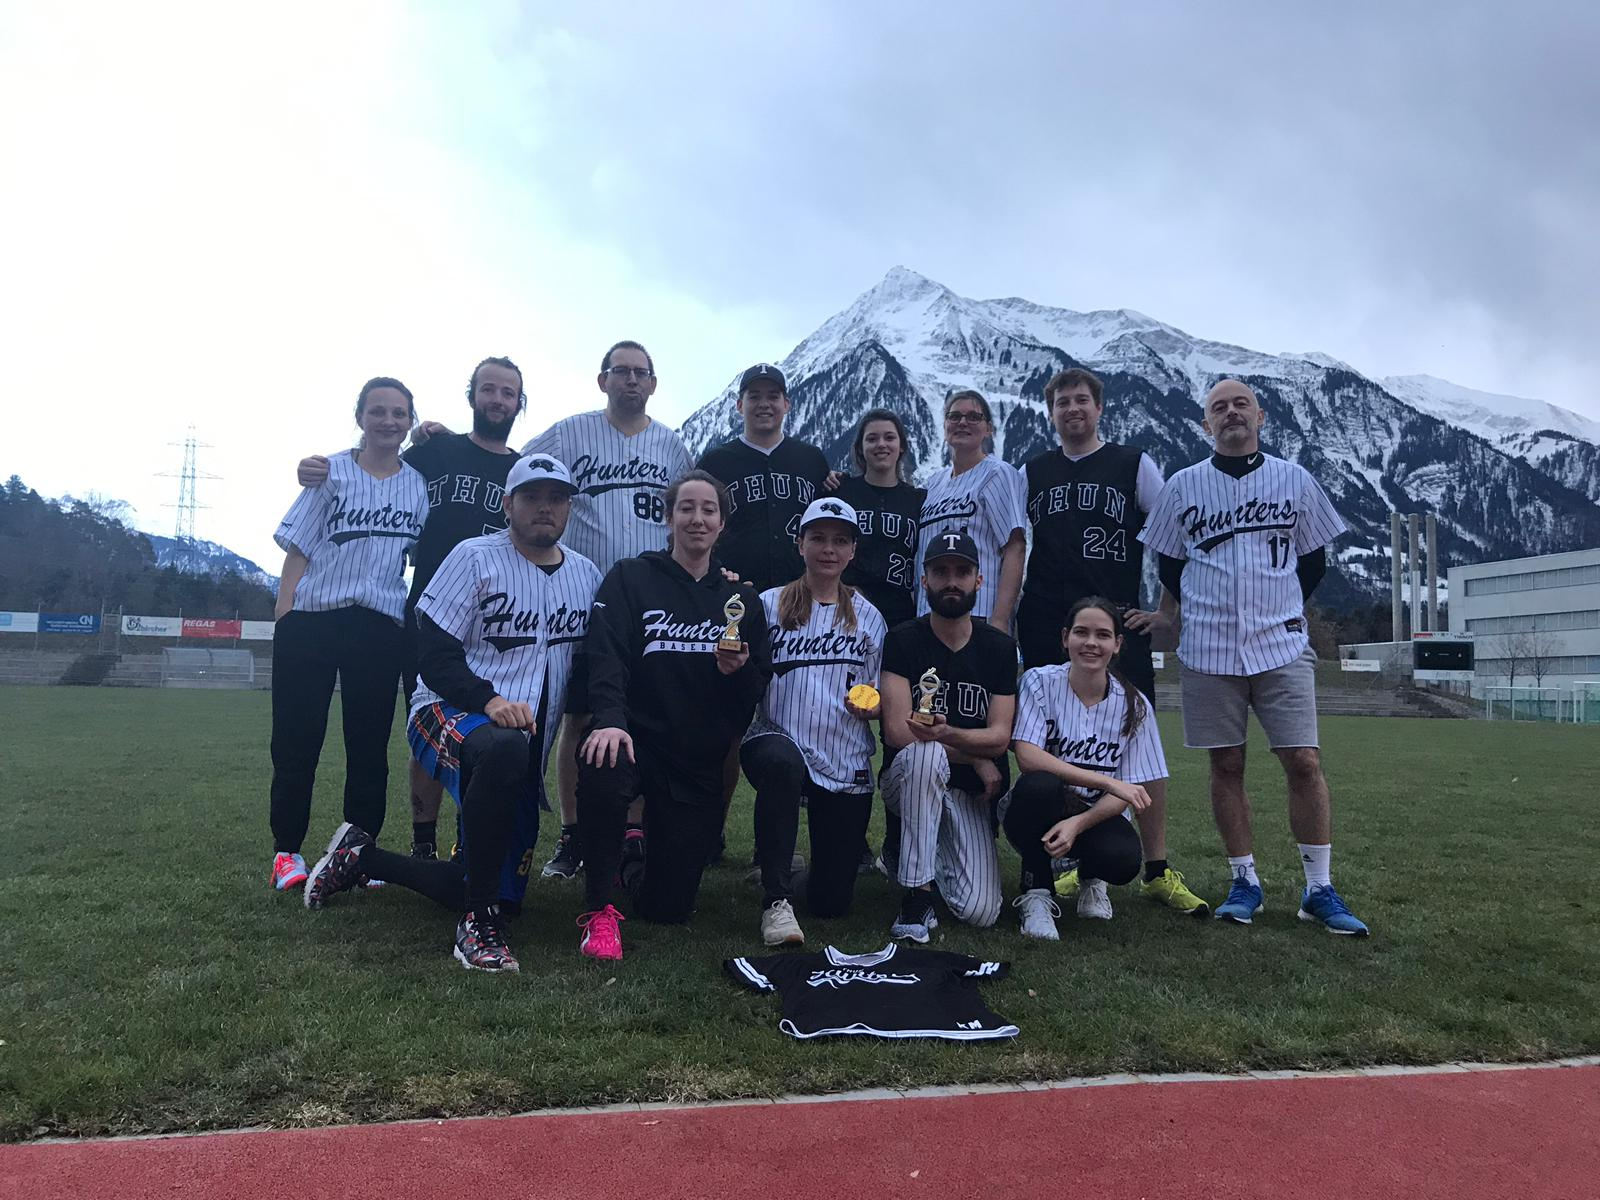 https://www.hunters.ch/wp/wp-content/uploads/2019/02/niesäcup19-huntersall-5.jpg